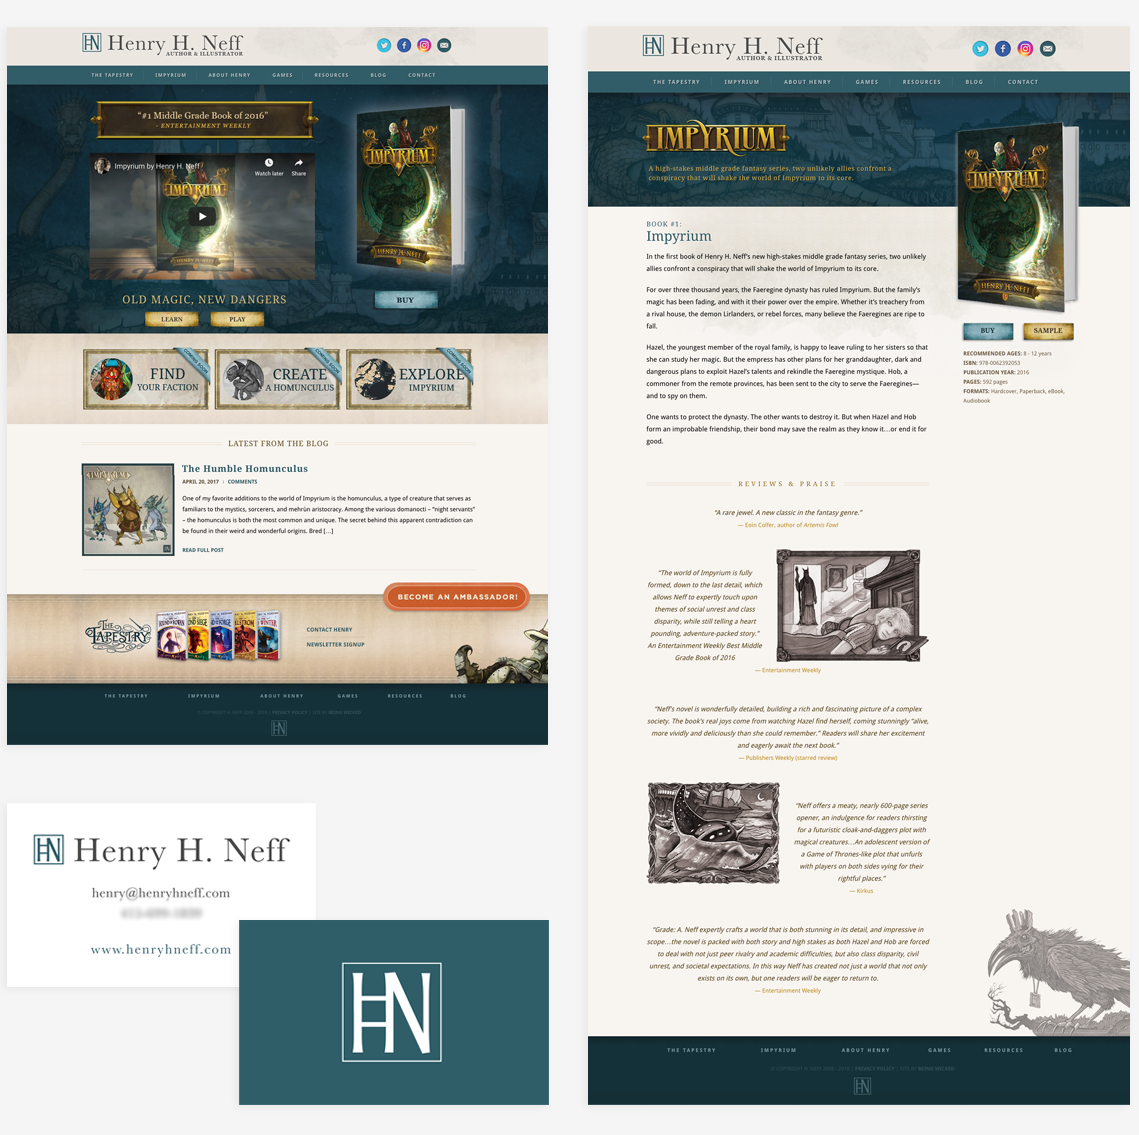 Full design detail screenshots for Henry H. Neff website